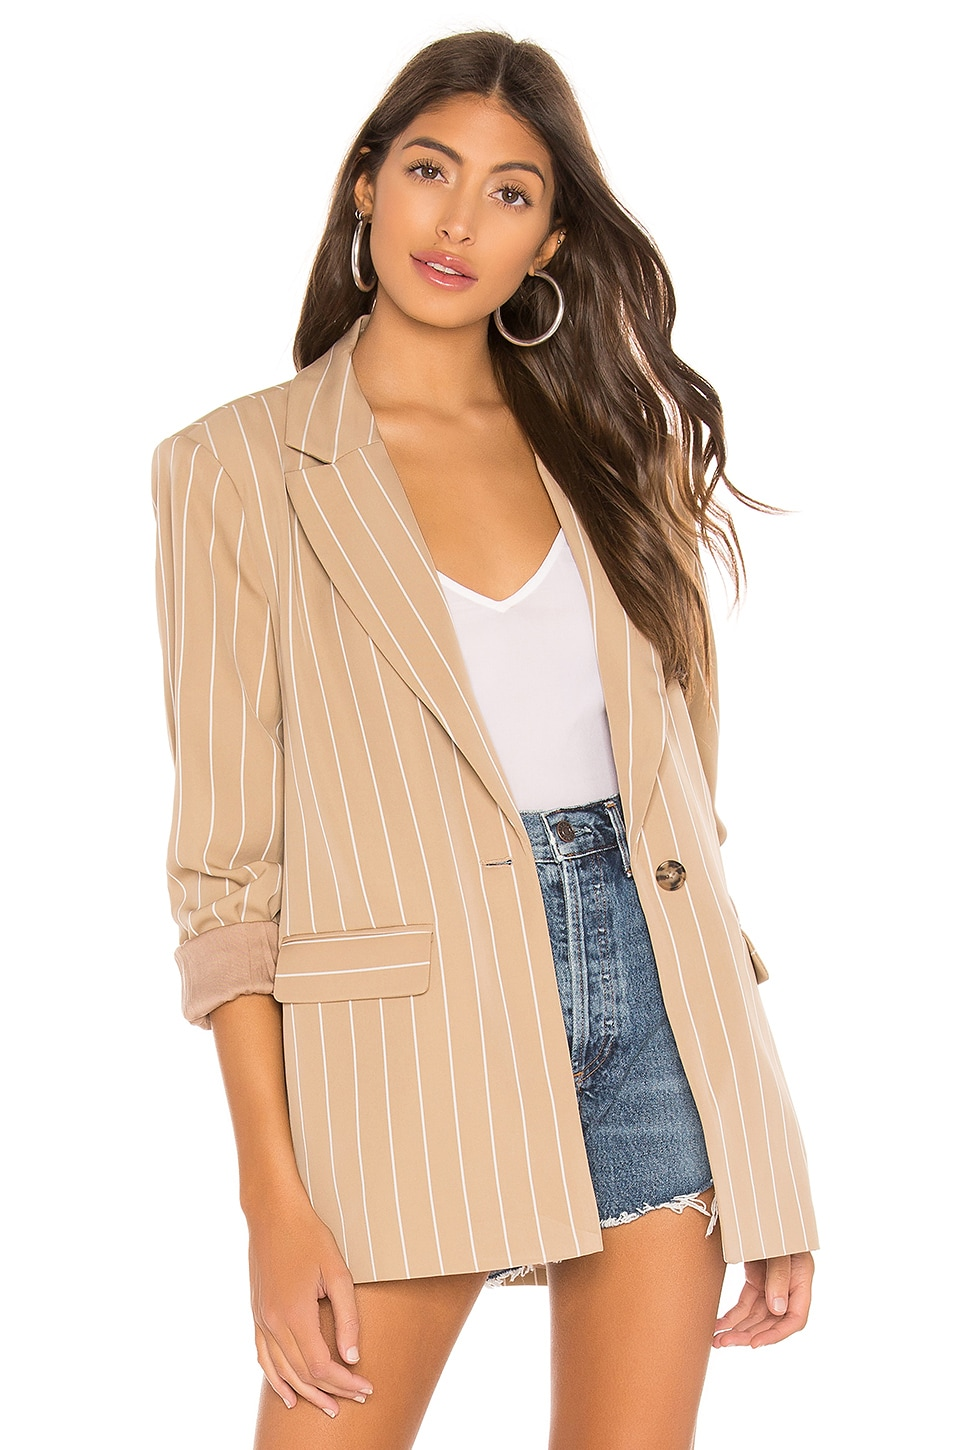 L'Academie The Jeanette Blazer in Beige & White